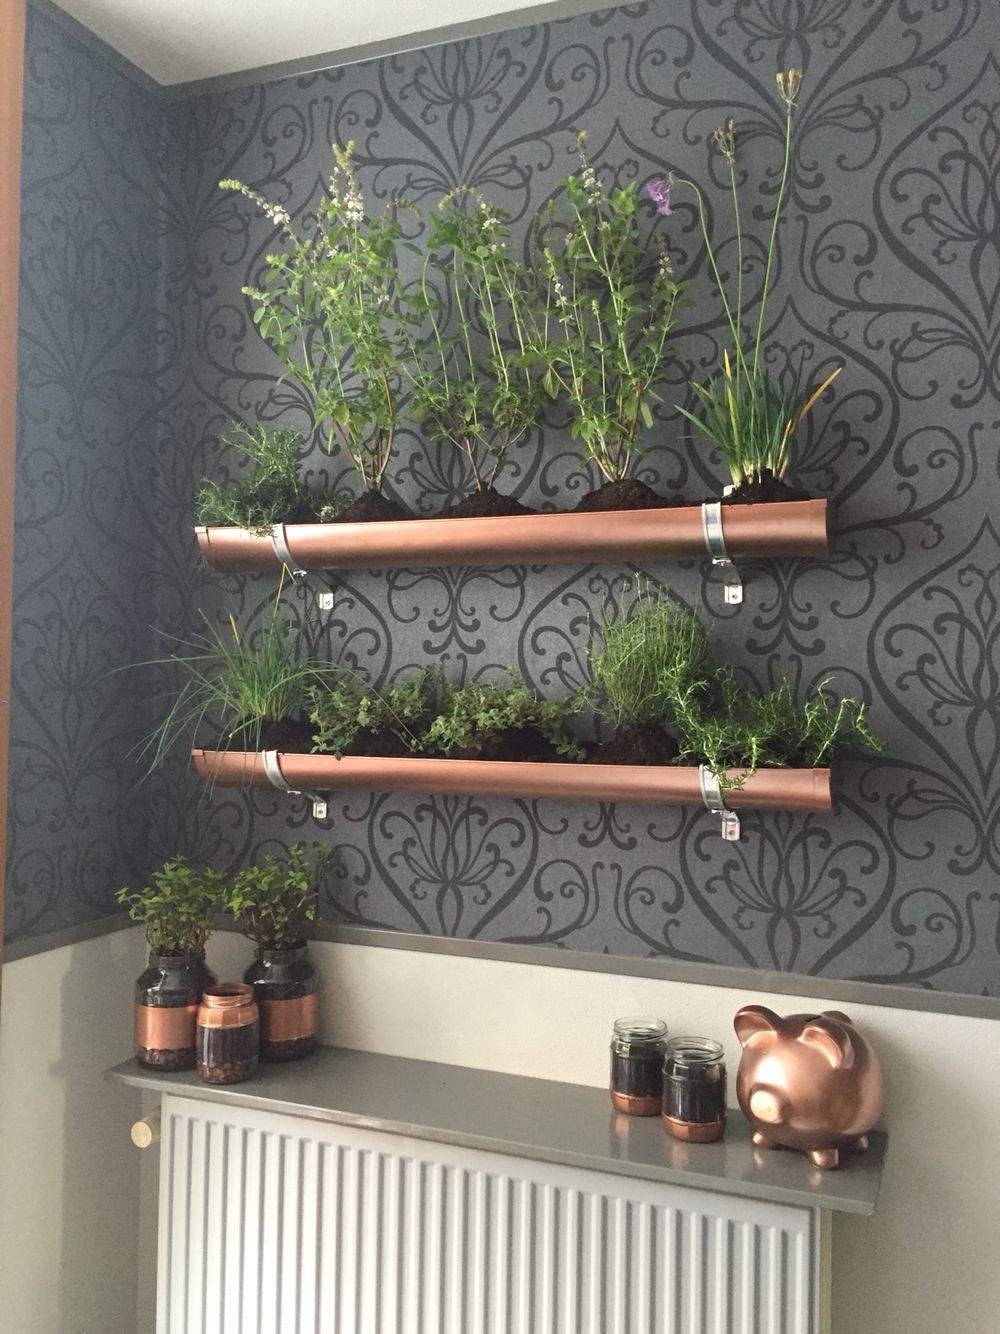 Indoor vertical herb garden pvc gutter and copper spray paint to give it a steampunk ish look old pickle jars and spray paint equals cool planters